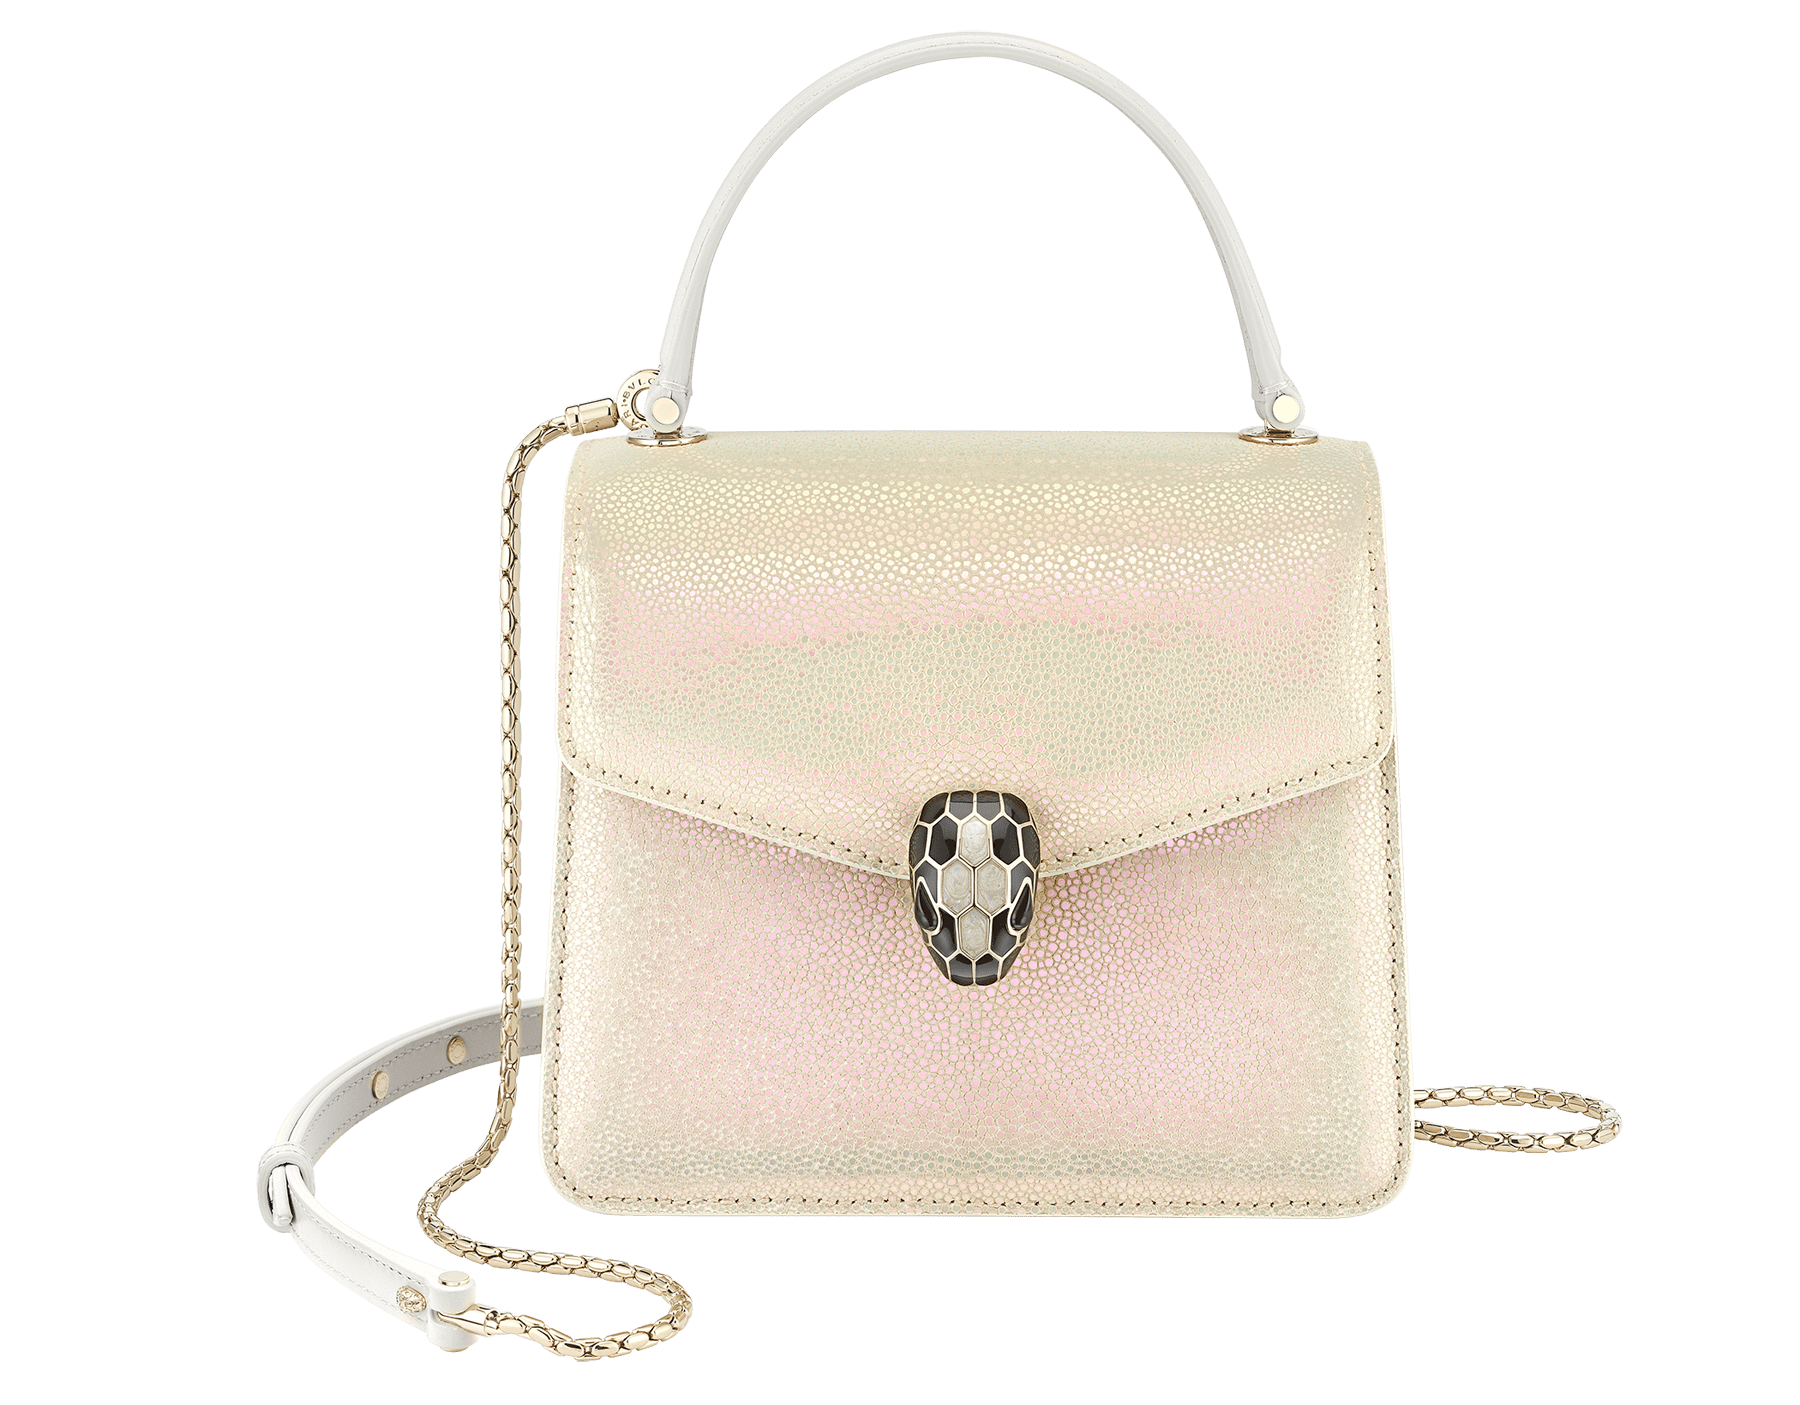 """Serpenti Forever"" crossbody bag in Milky Opal beige galuchat skin with agate-white calfskin edges and black nappa leather inner lining. Alluring snakehead closure in light gold-plated brass enriched with black and pearly, agate-white enamel and black onyx eyes. 752-CG image 1"